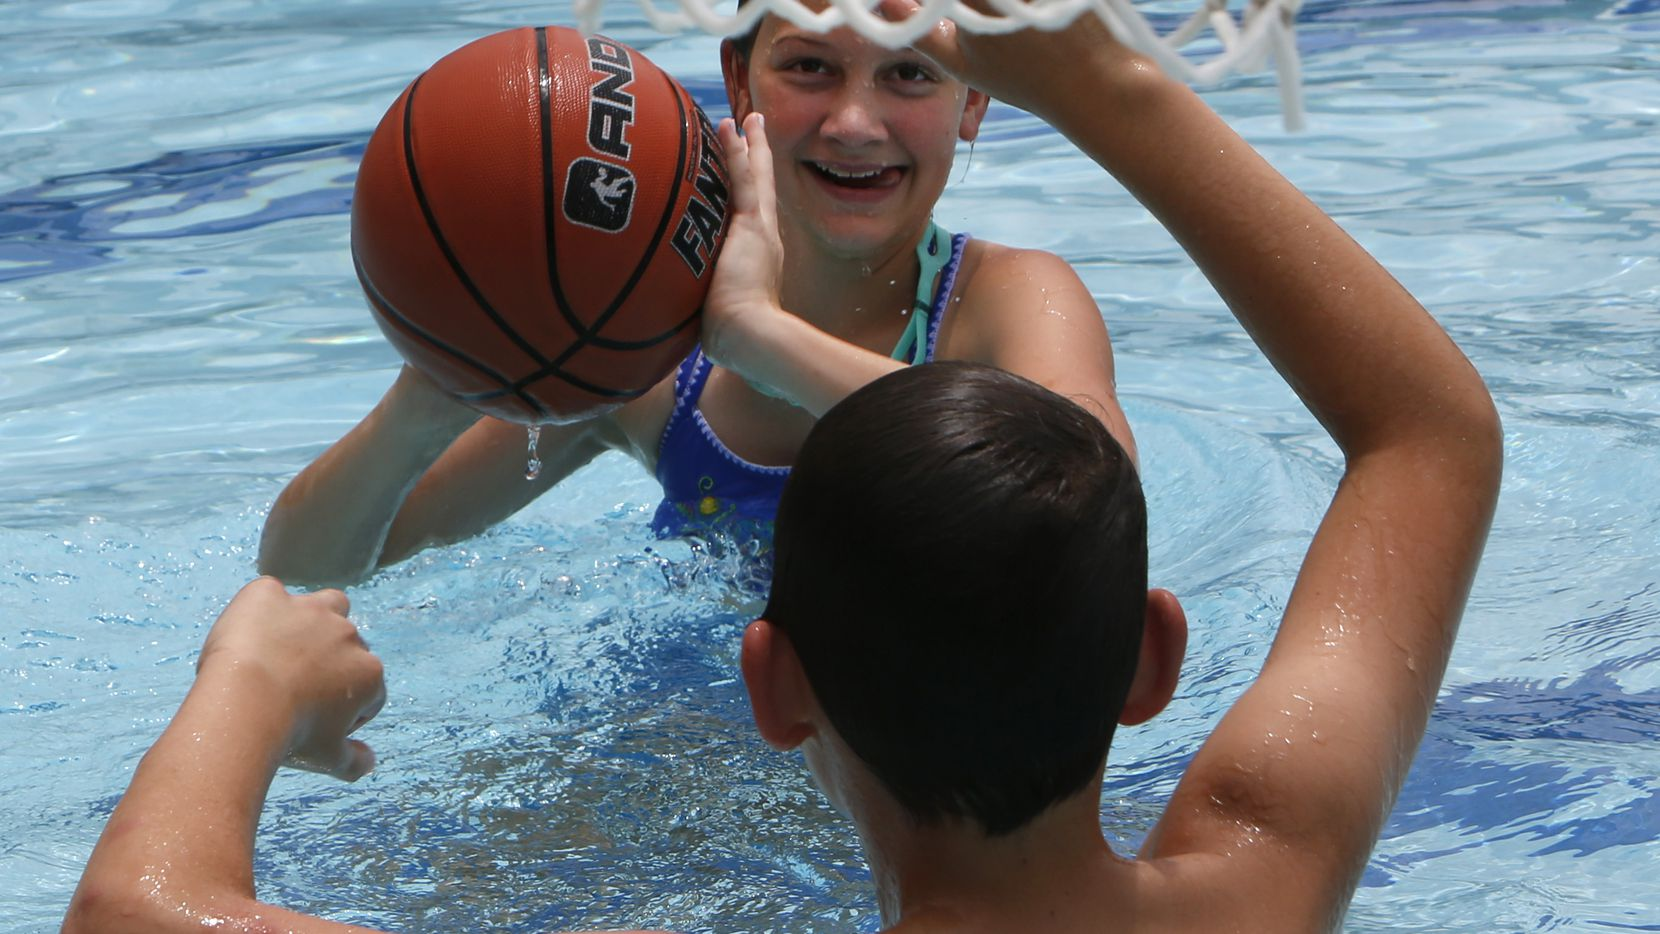 Emma Koelpin, 13, eyes a shot as she challenges her brother Elijah,11, to a game of poolside basketball. Beckie Koelpin joined her children and grandchild for swimming fun in the sun and water at the Lake Highlands Aquatic Center in Dallas on June 12, 2021.